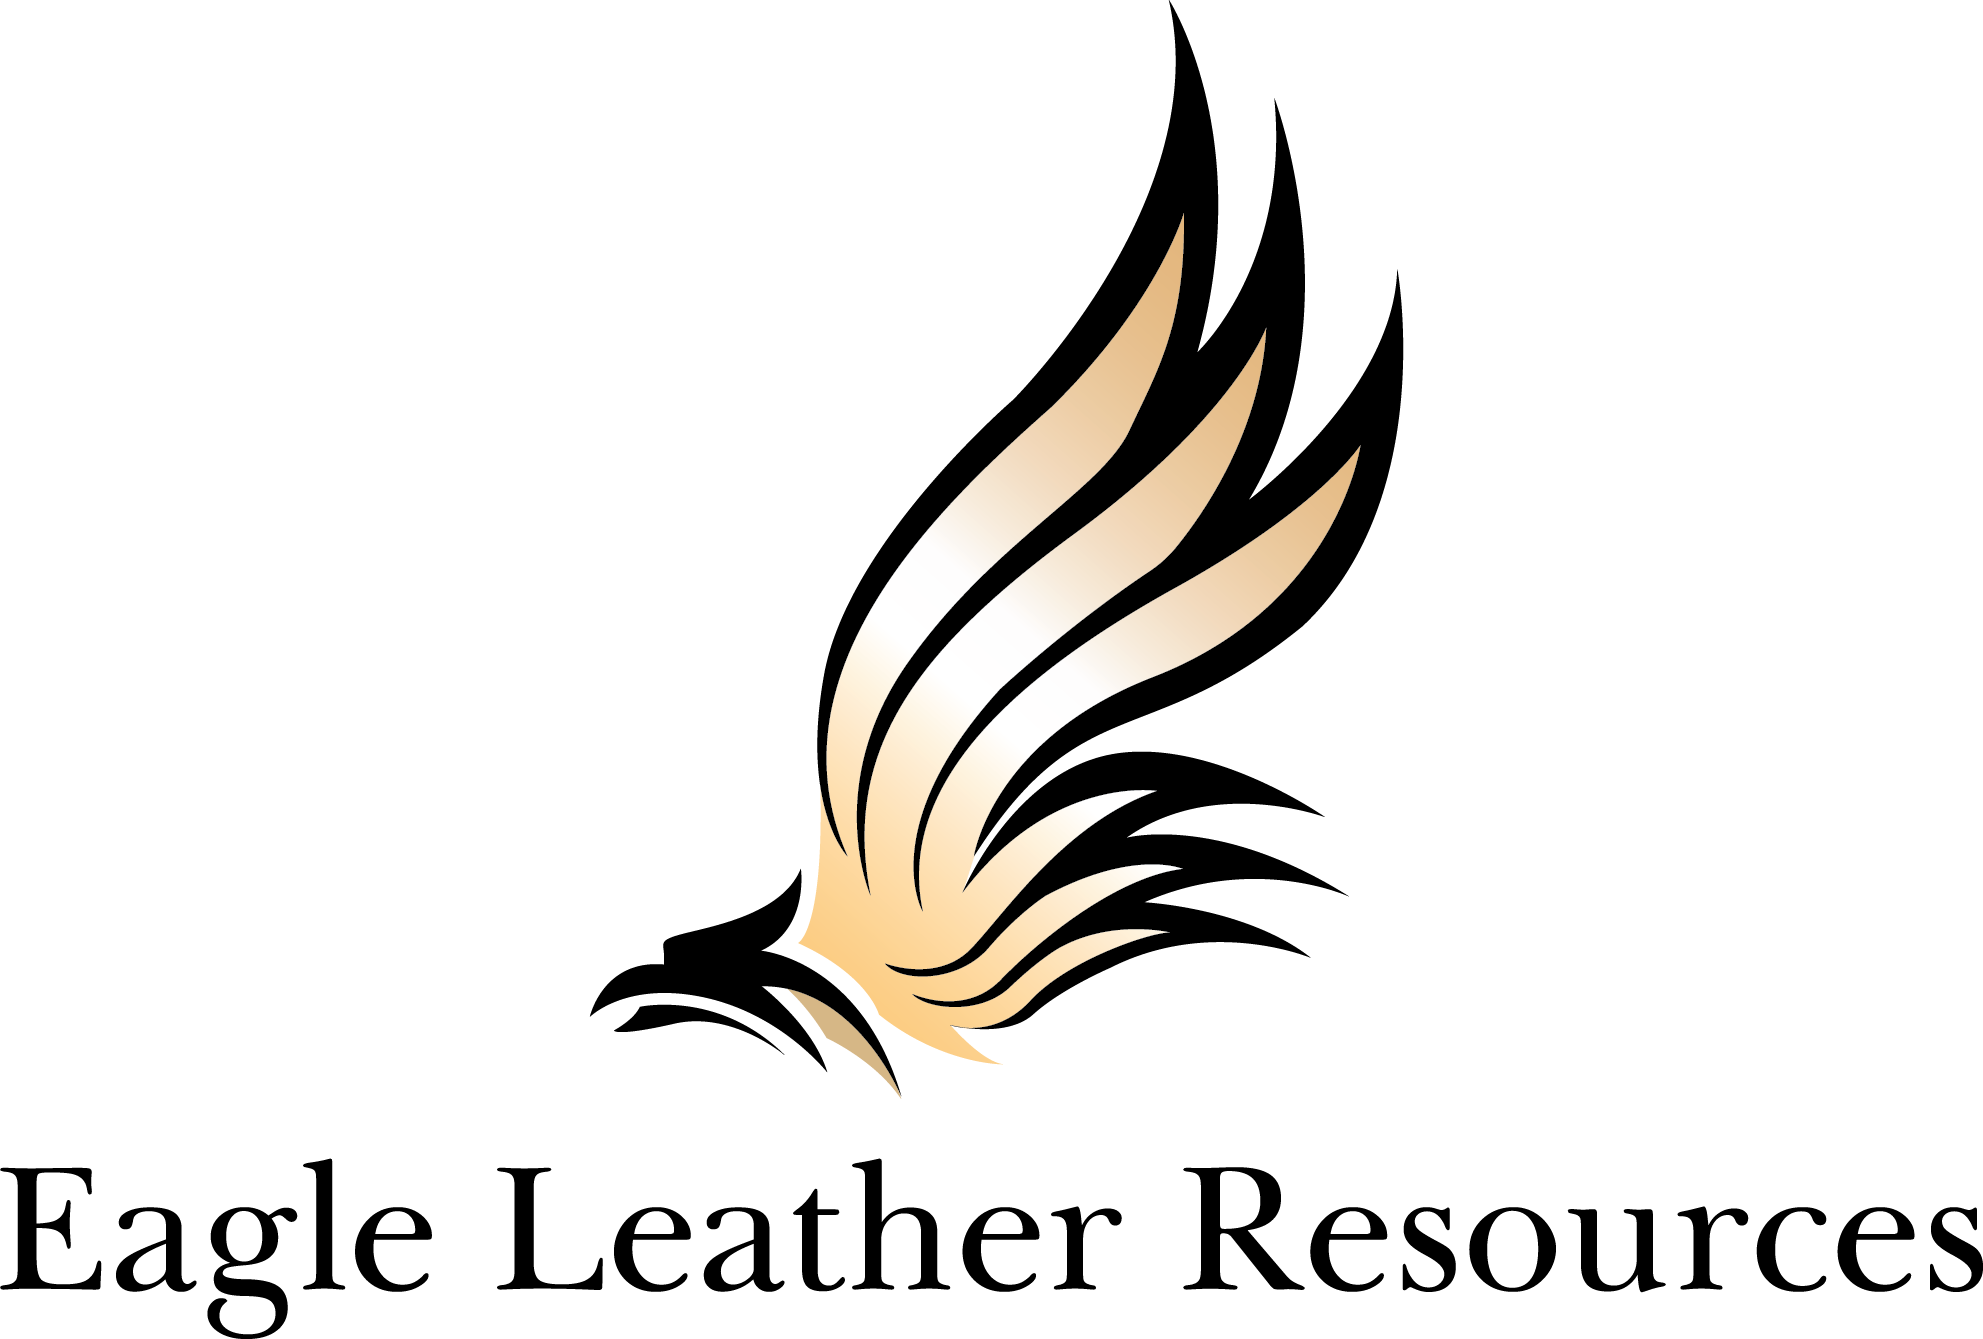 Eagle Leather Resources